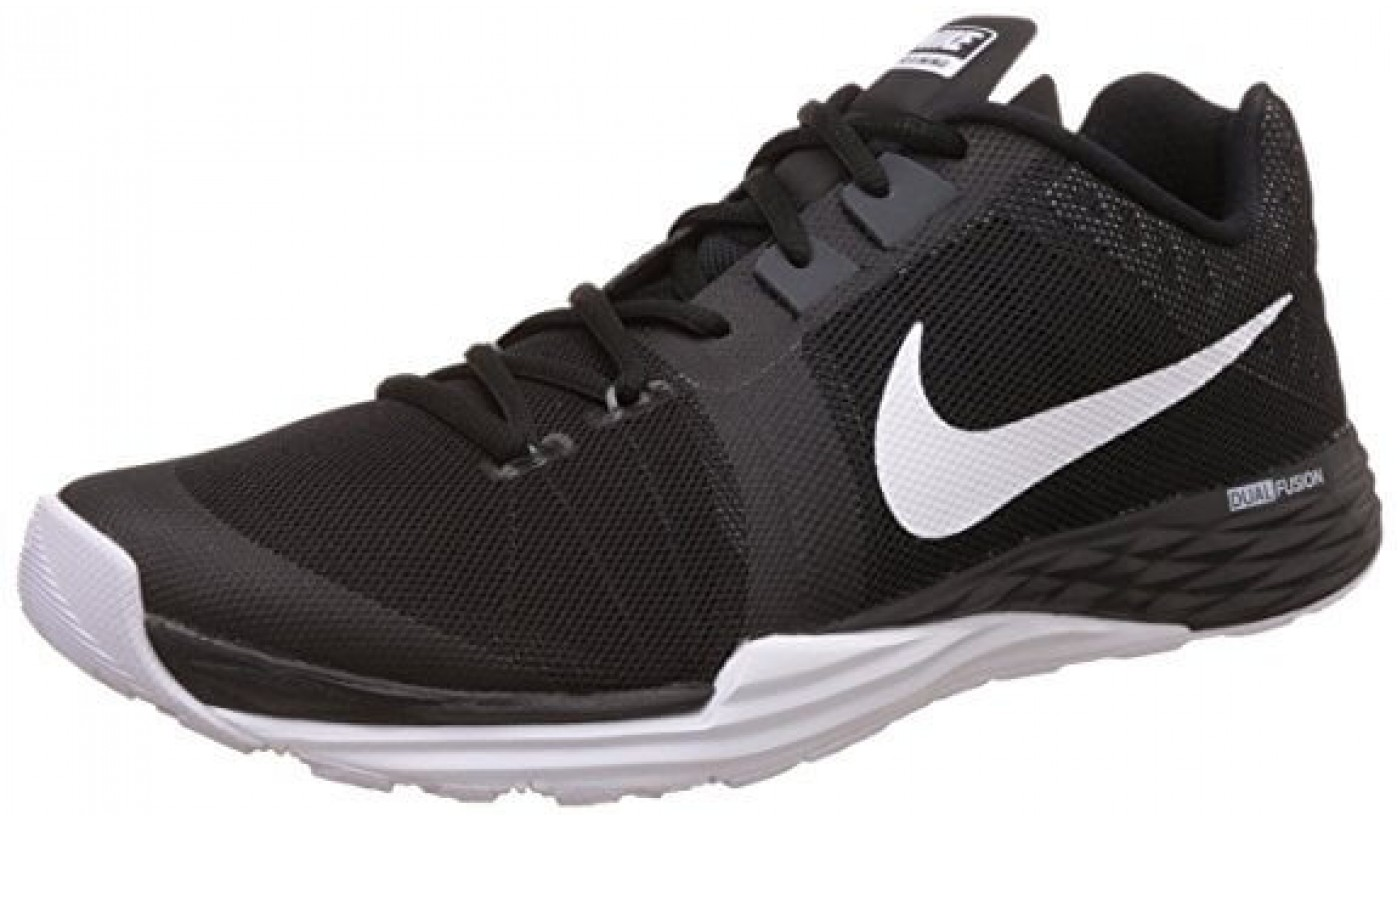 8f54ea0463c90 Nike Prime Iron DF SP Review - Buy or Not in Apr 2019